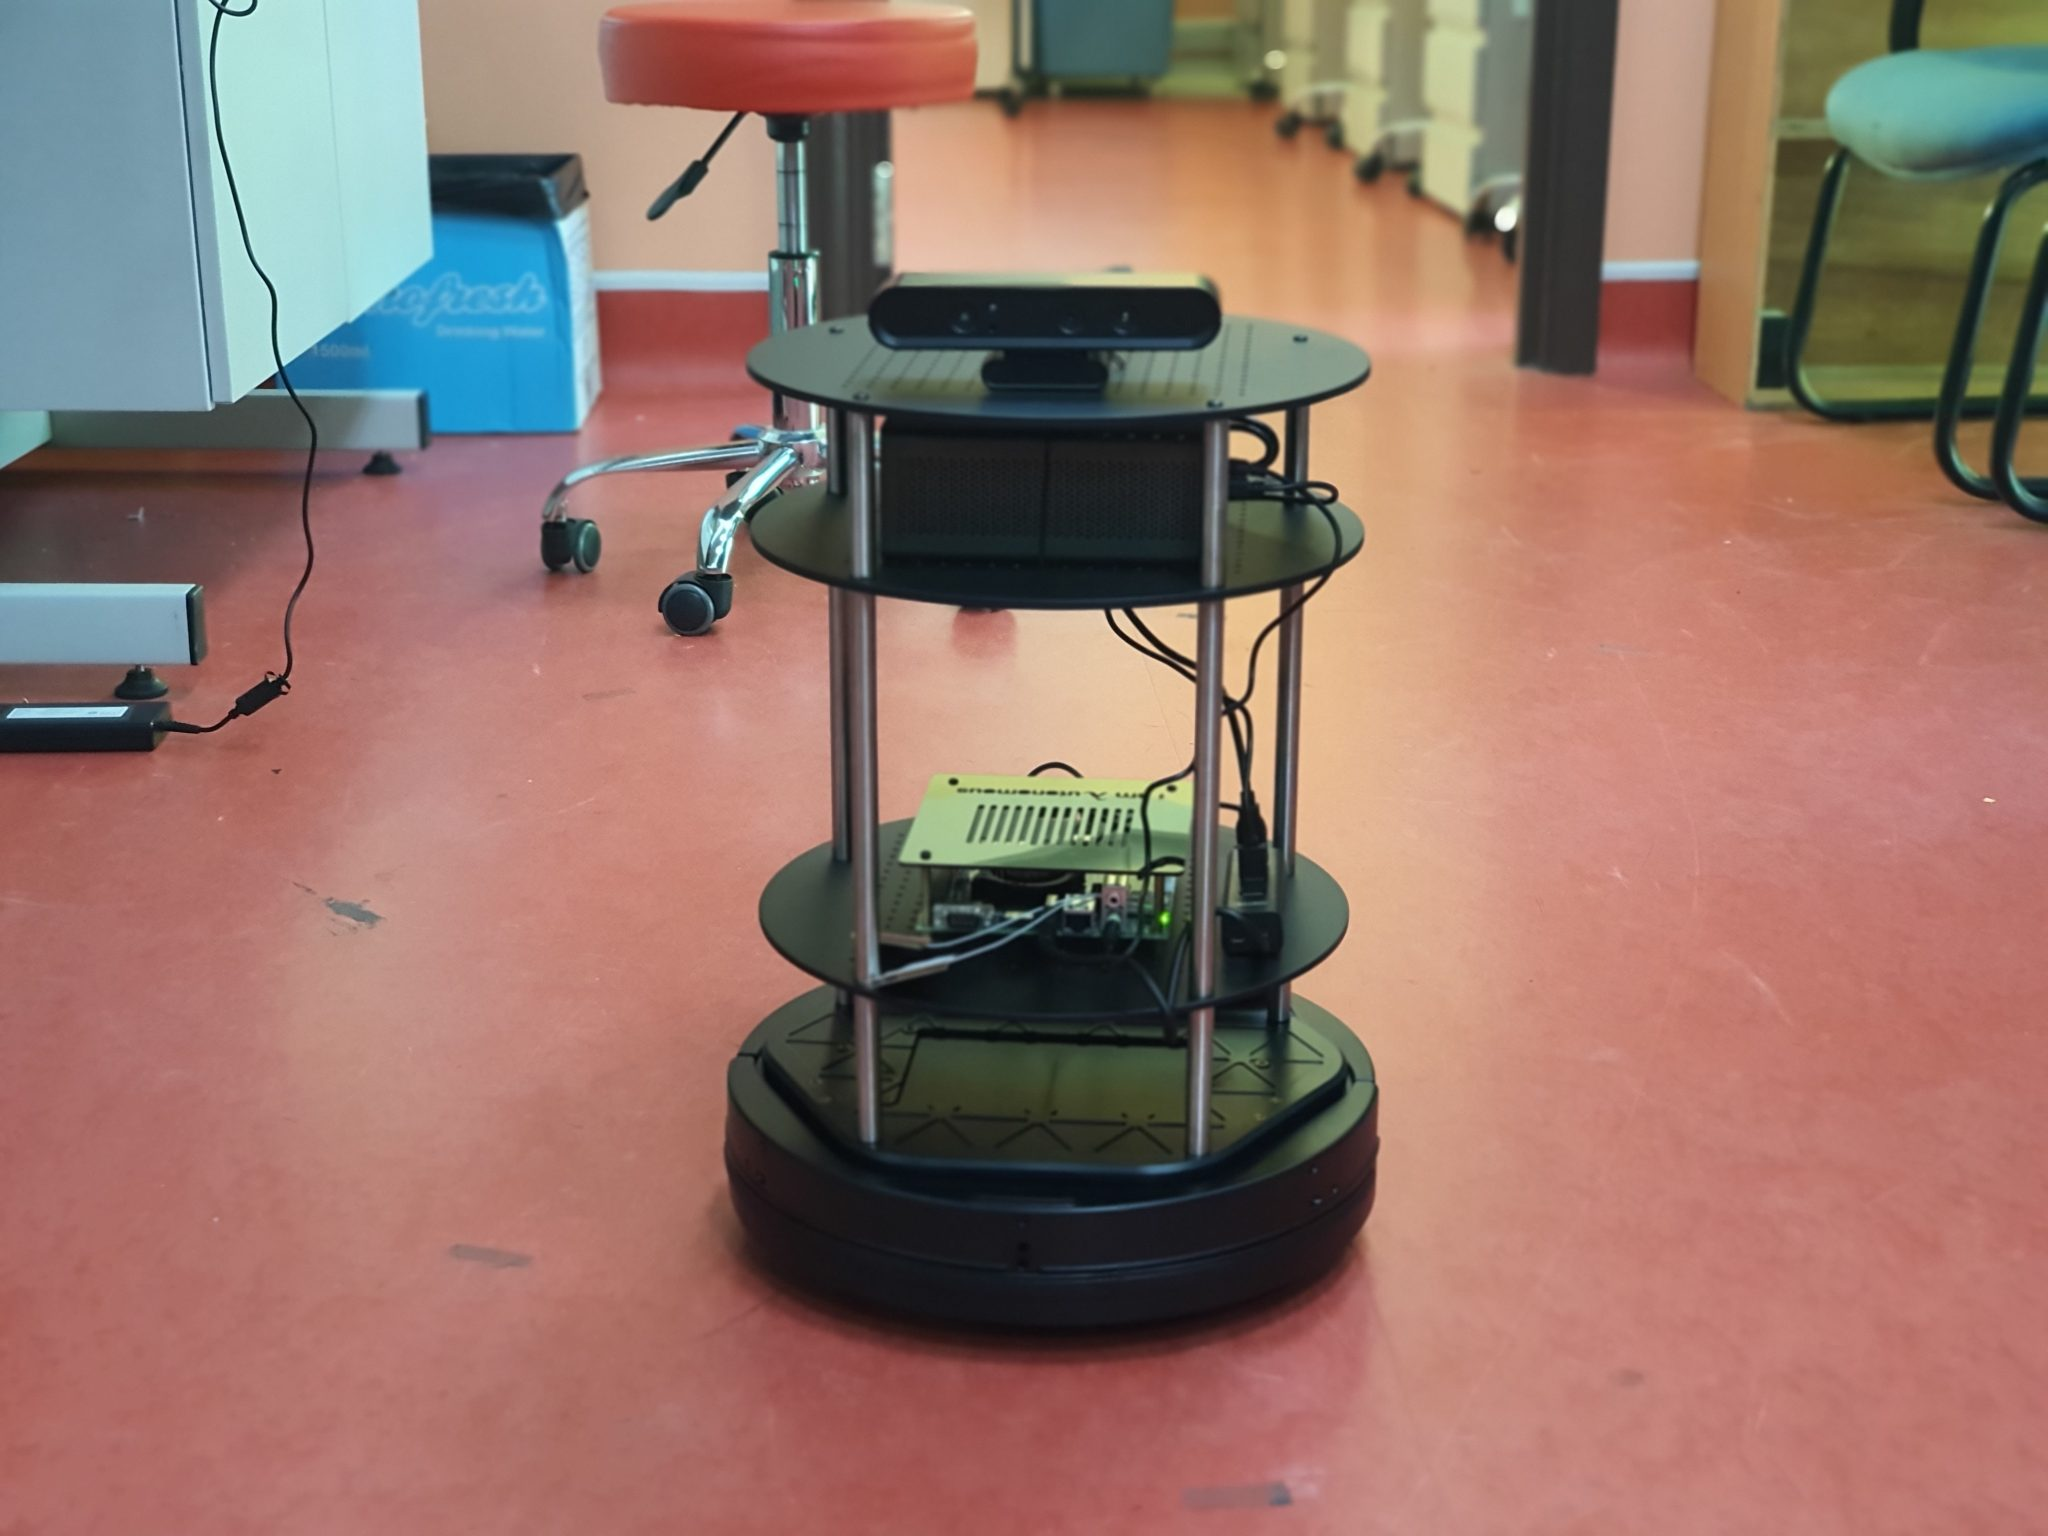 New mobile robot in Robolab, Turtlebot 2